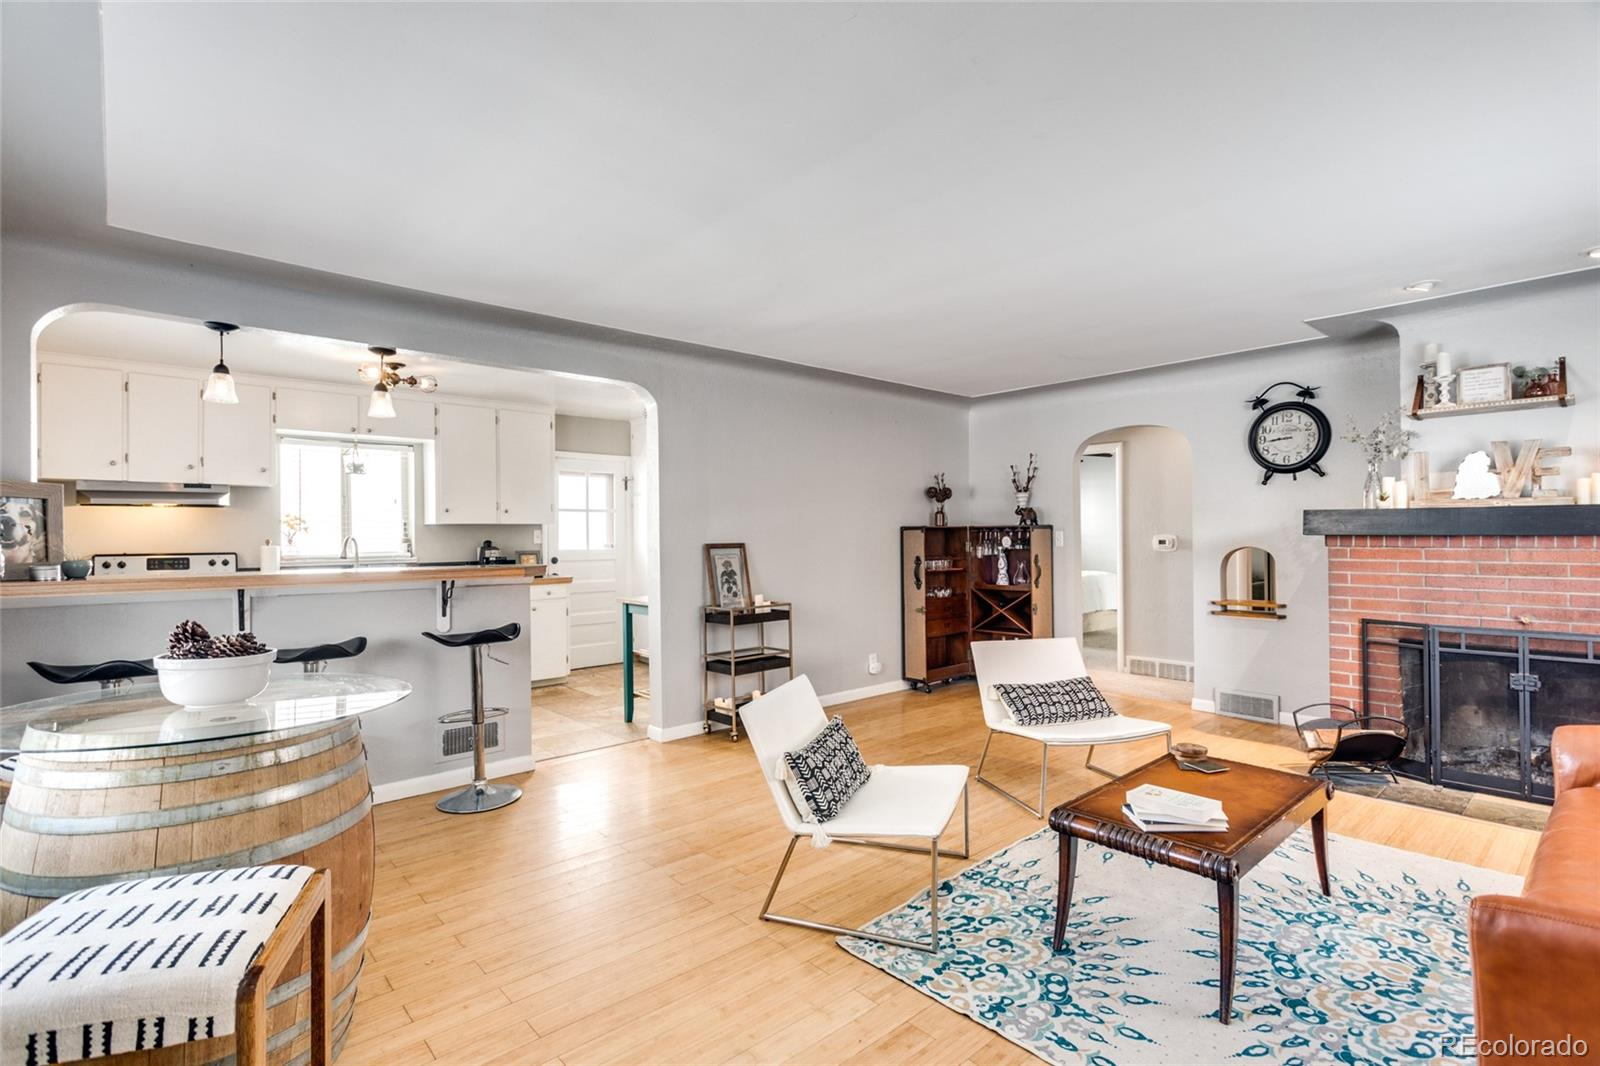 MLS# 9565158 - 1 - 1212 N Downing Street, Denver, CO 80218